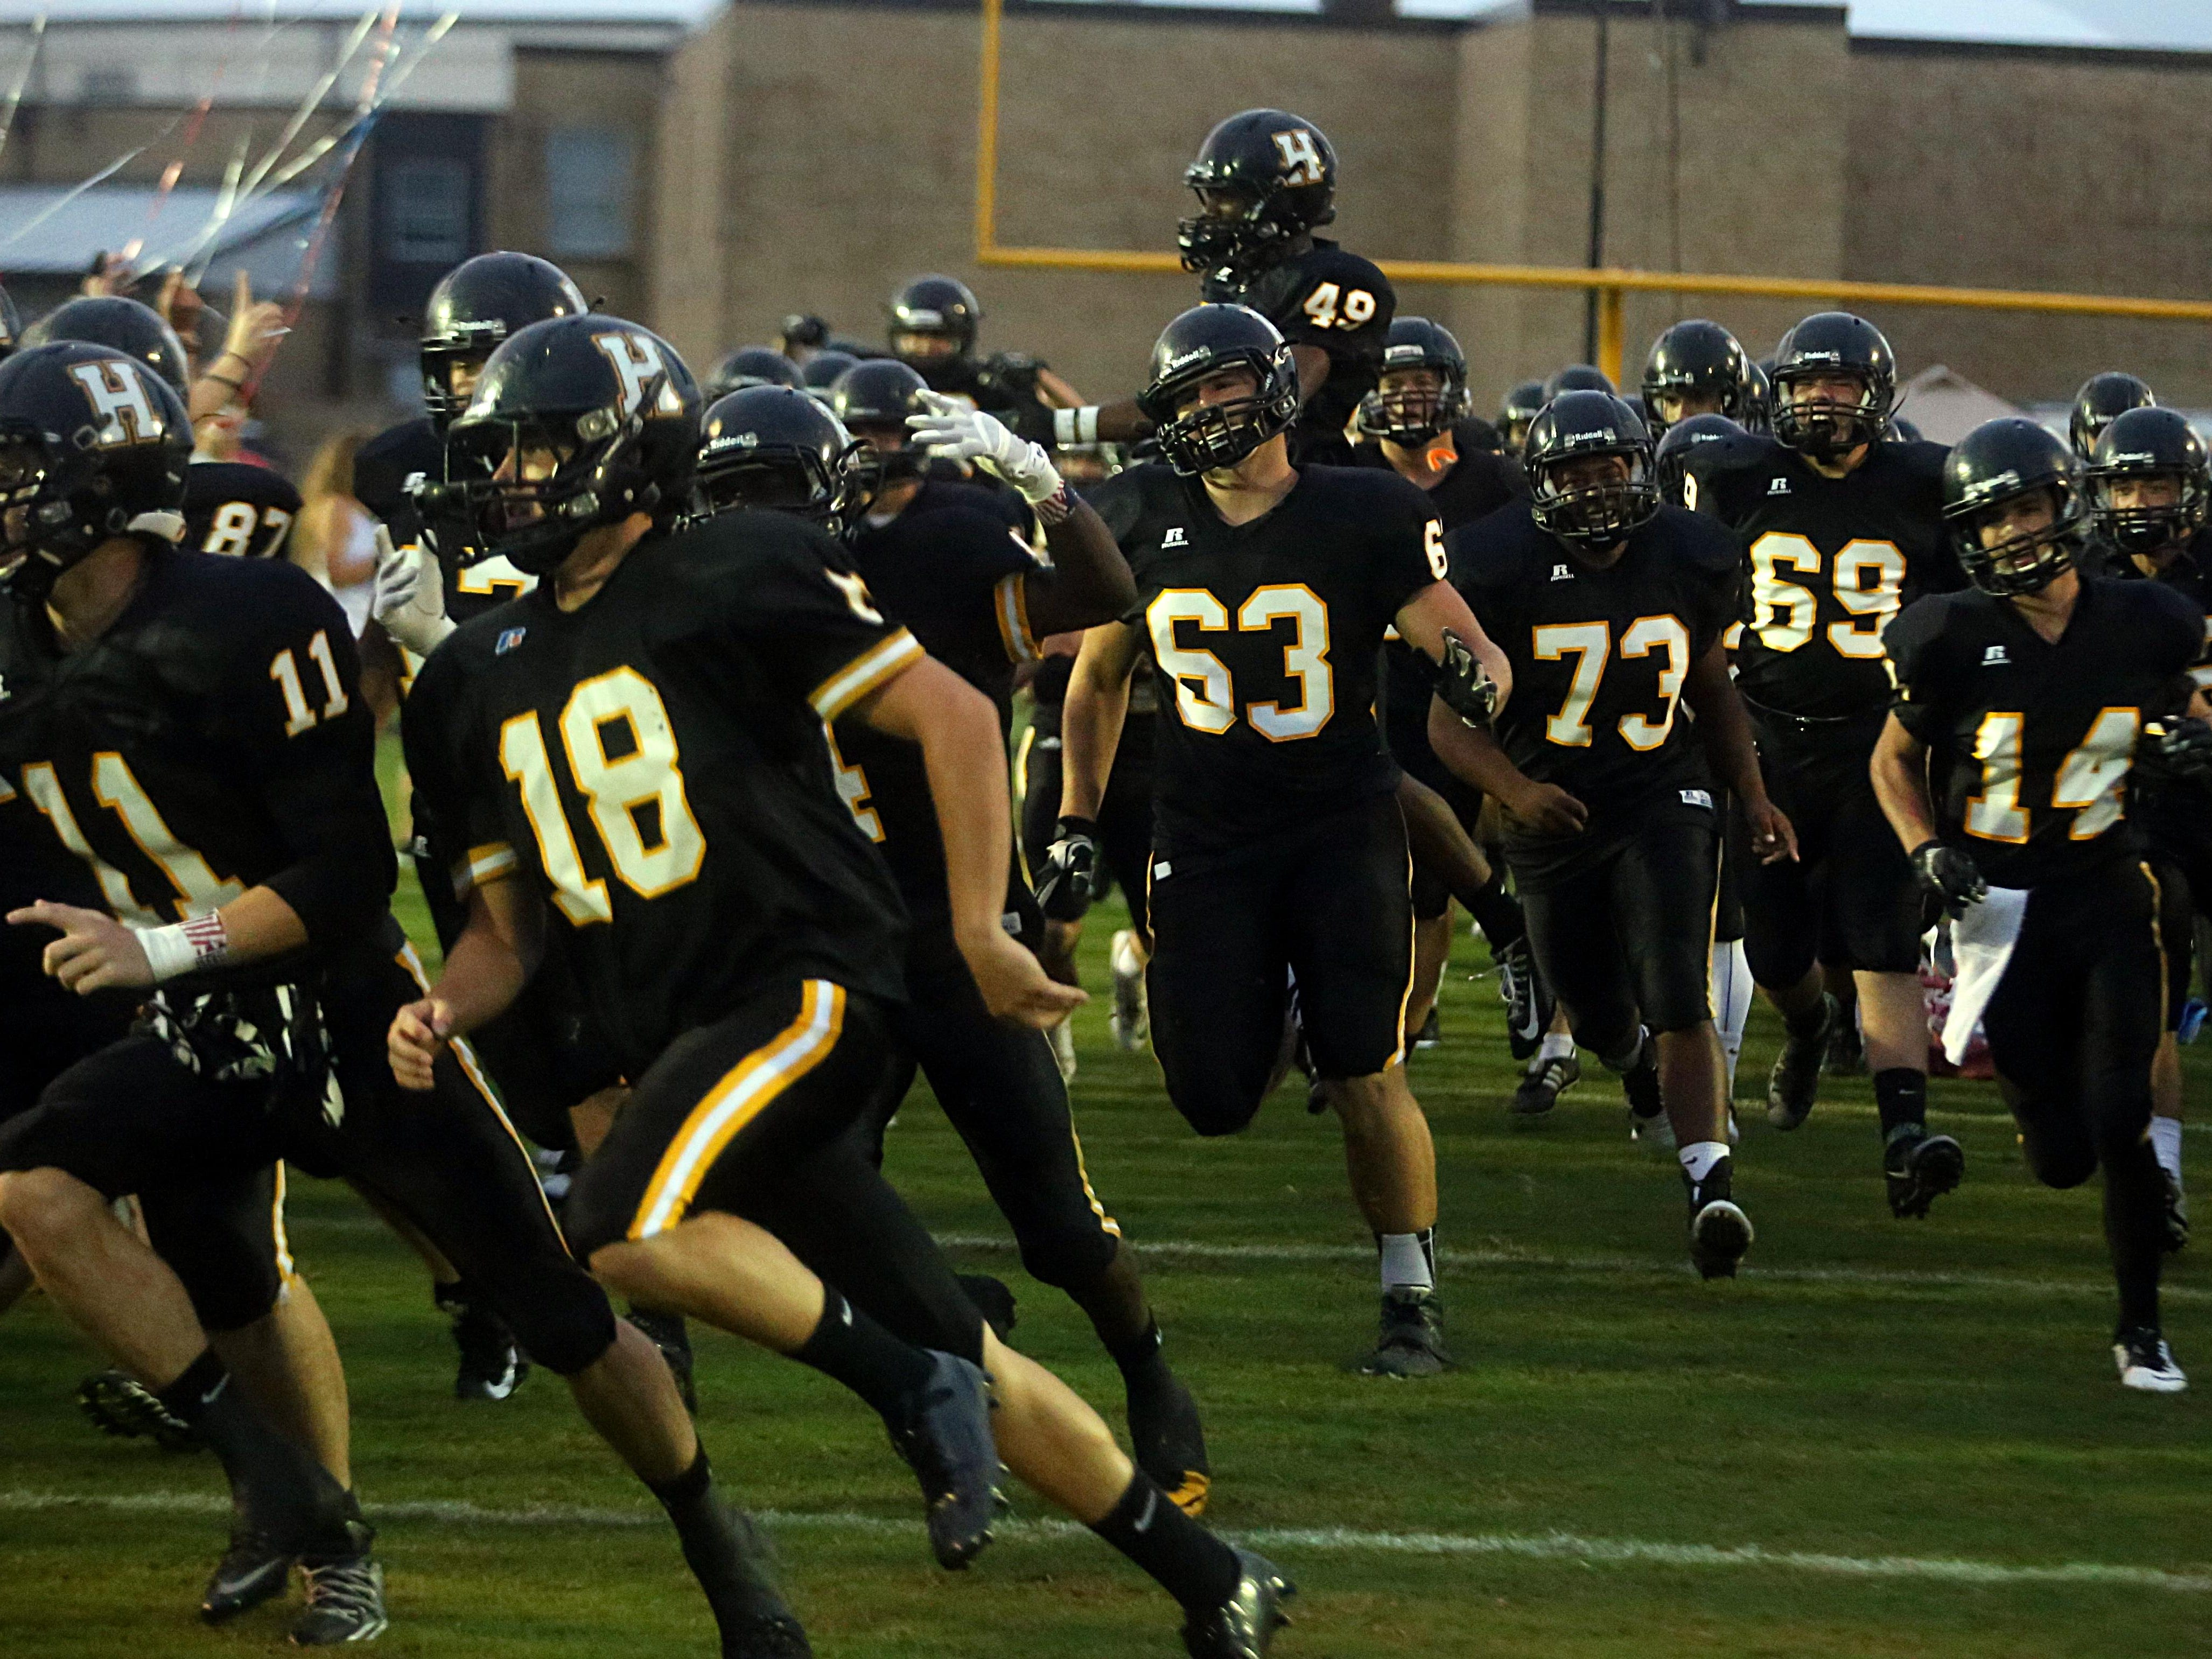 Hendersonville has won its opening game in the playoffs in each of the last three seasons.